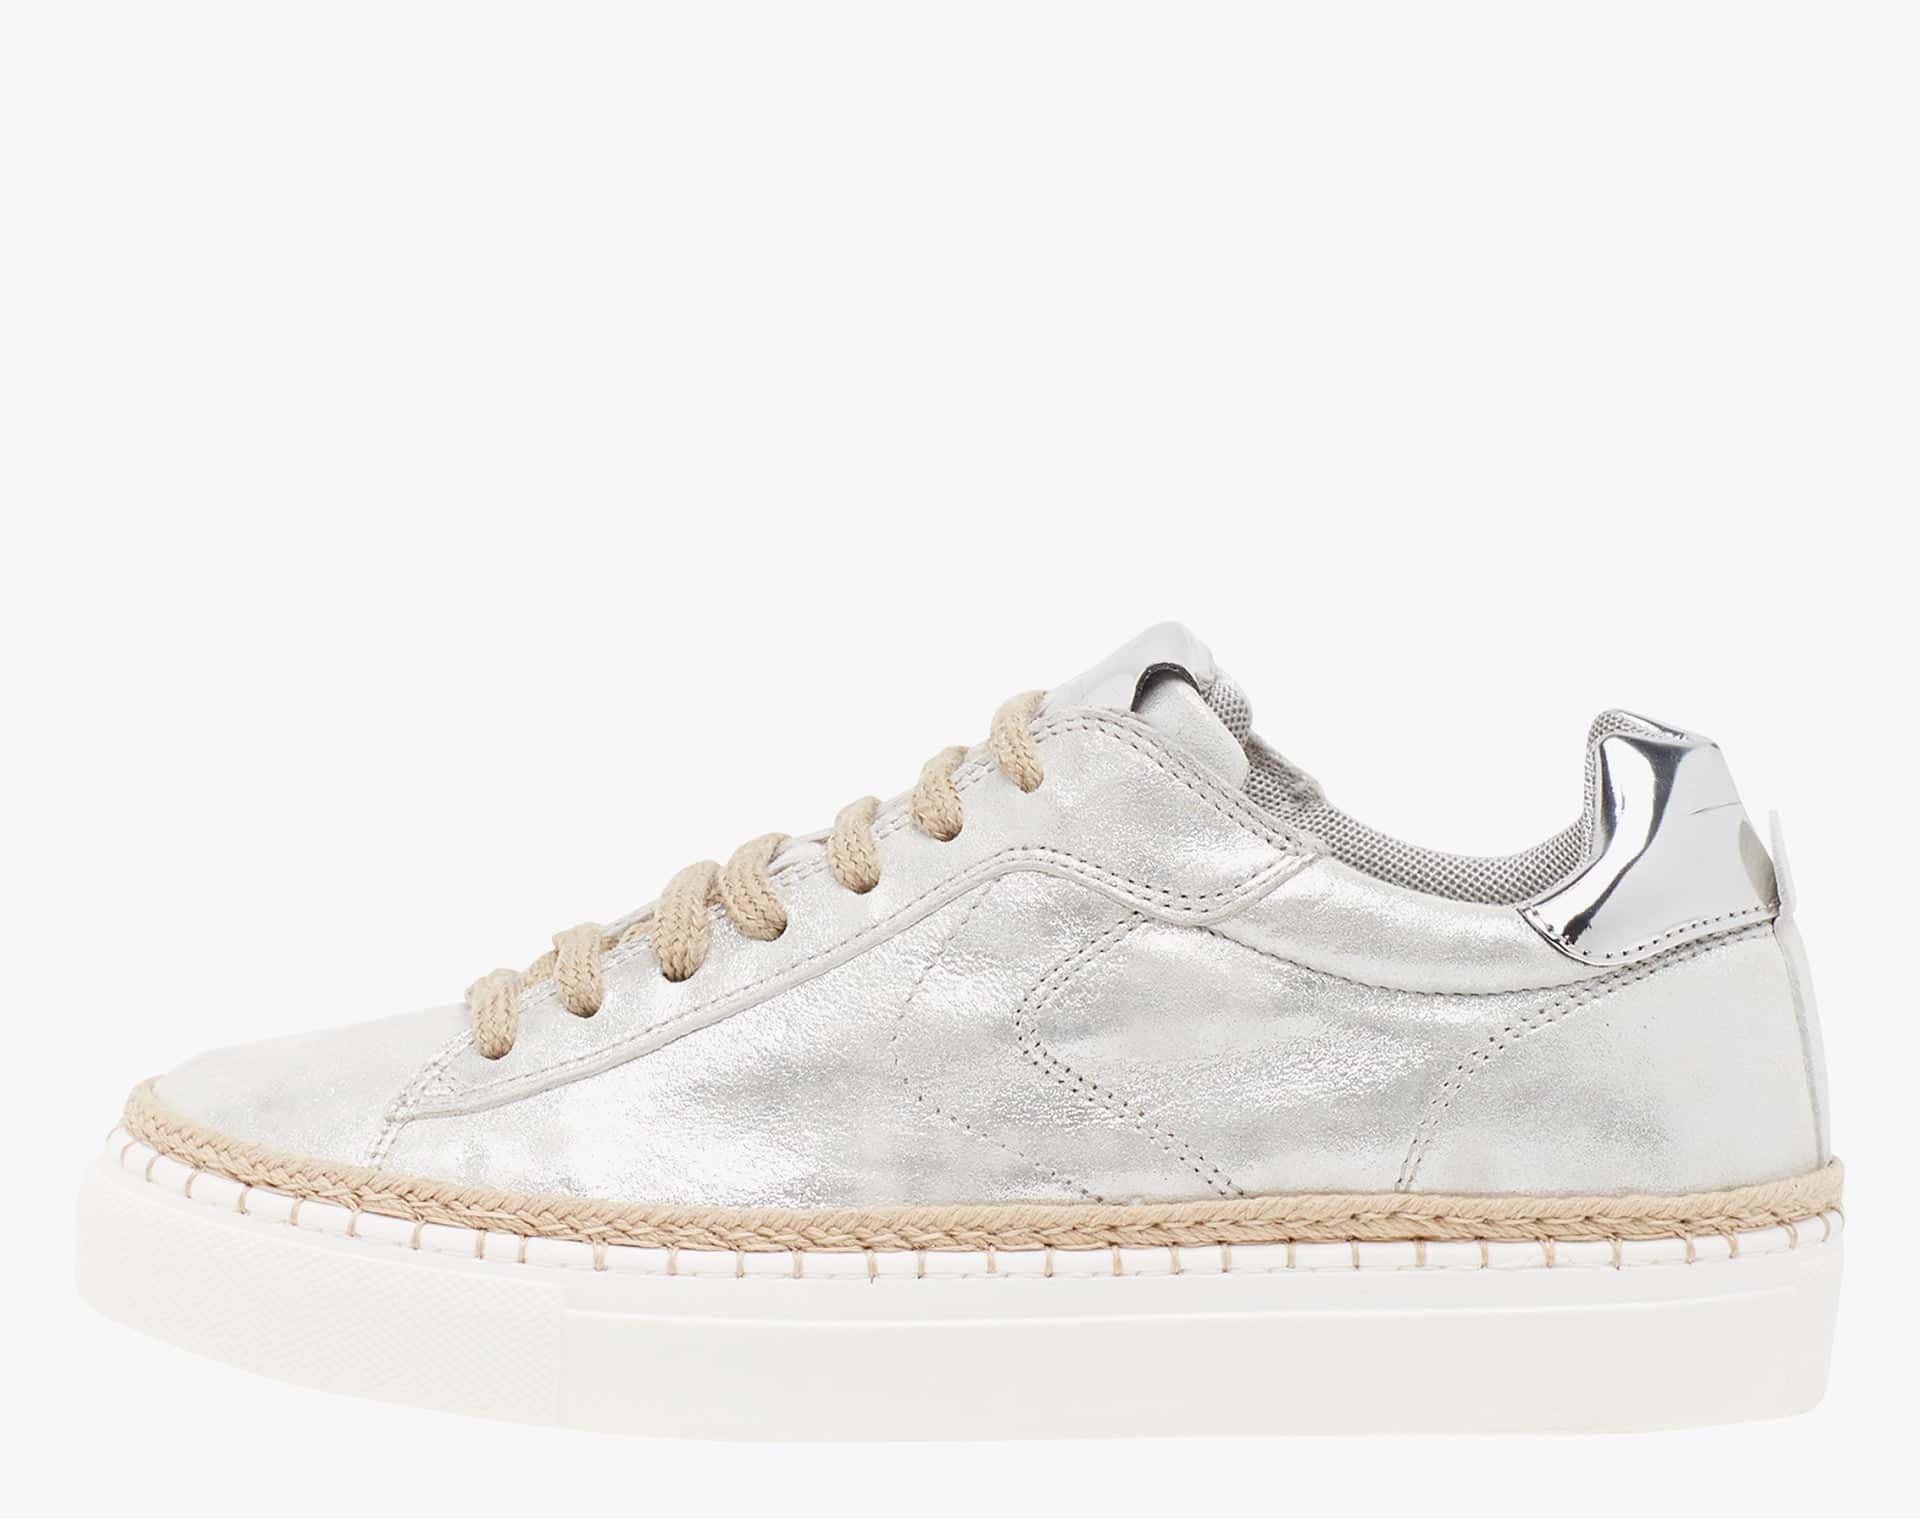 PANAREA - Laminated leather sneakers with jute details - Silver